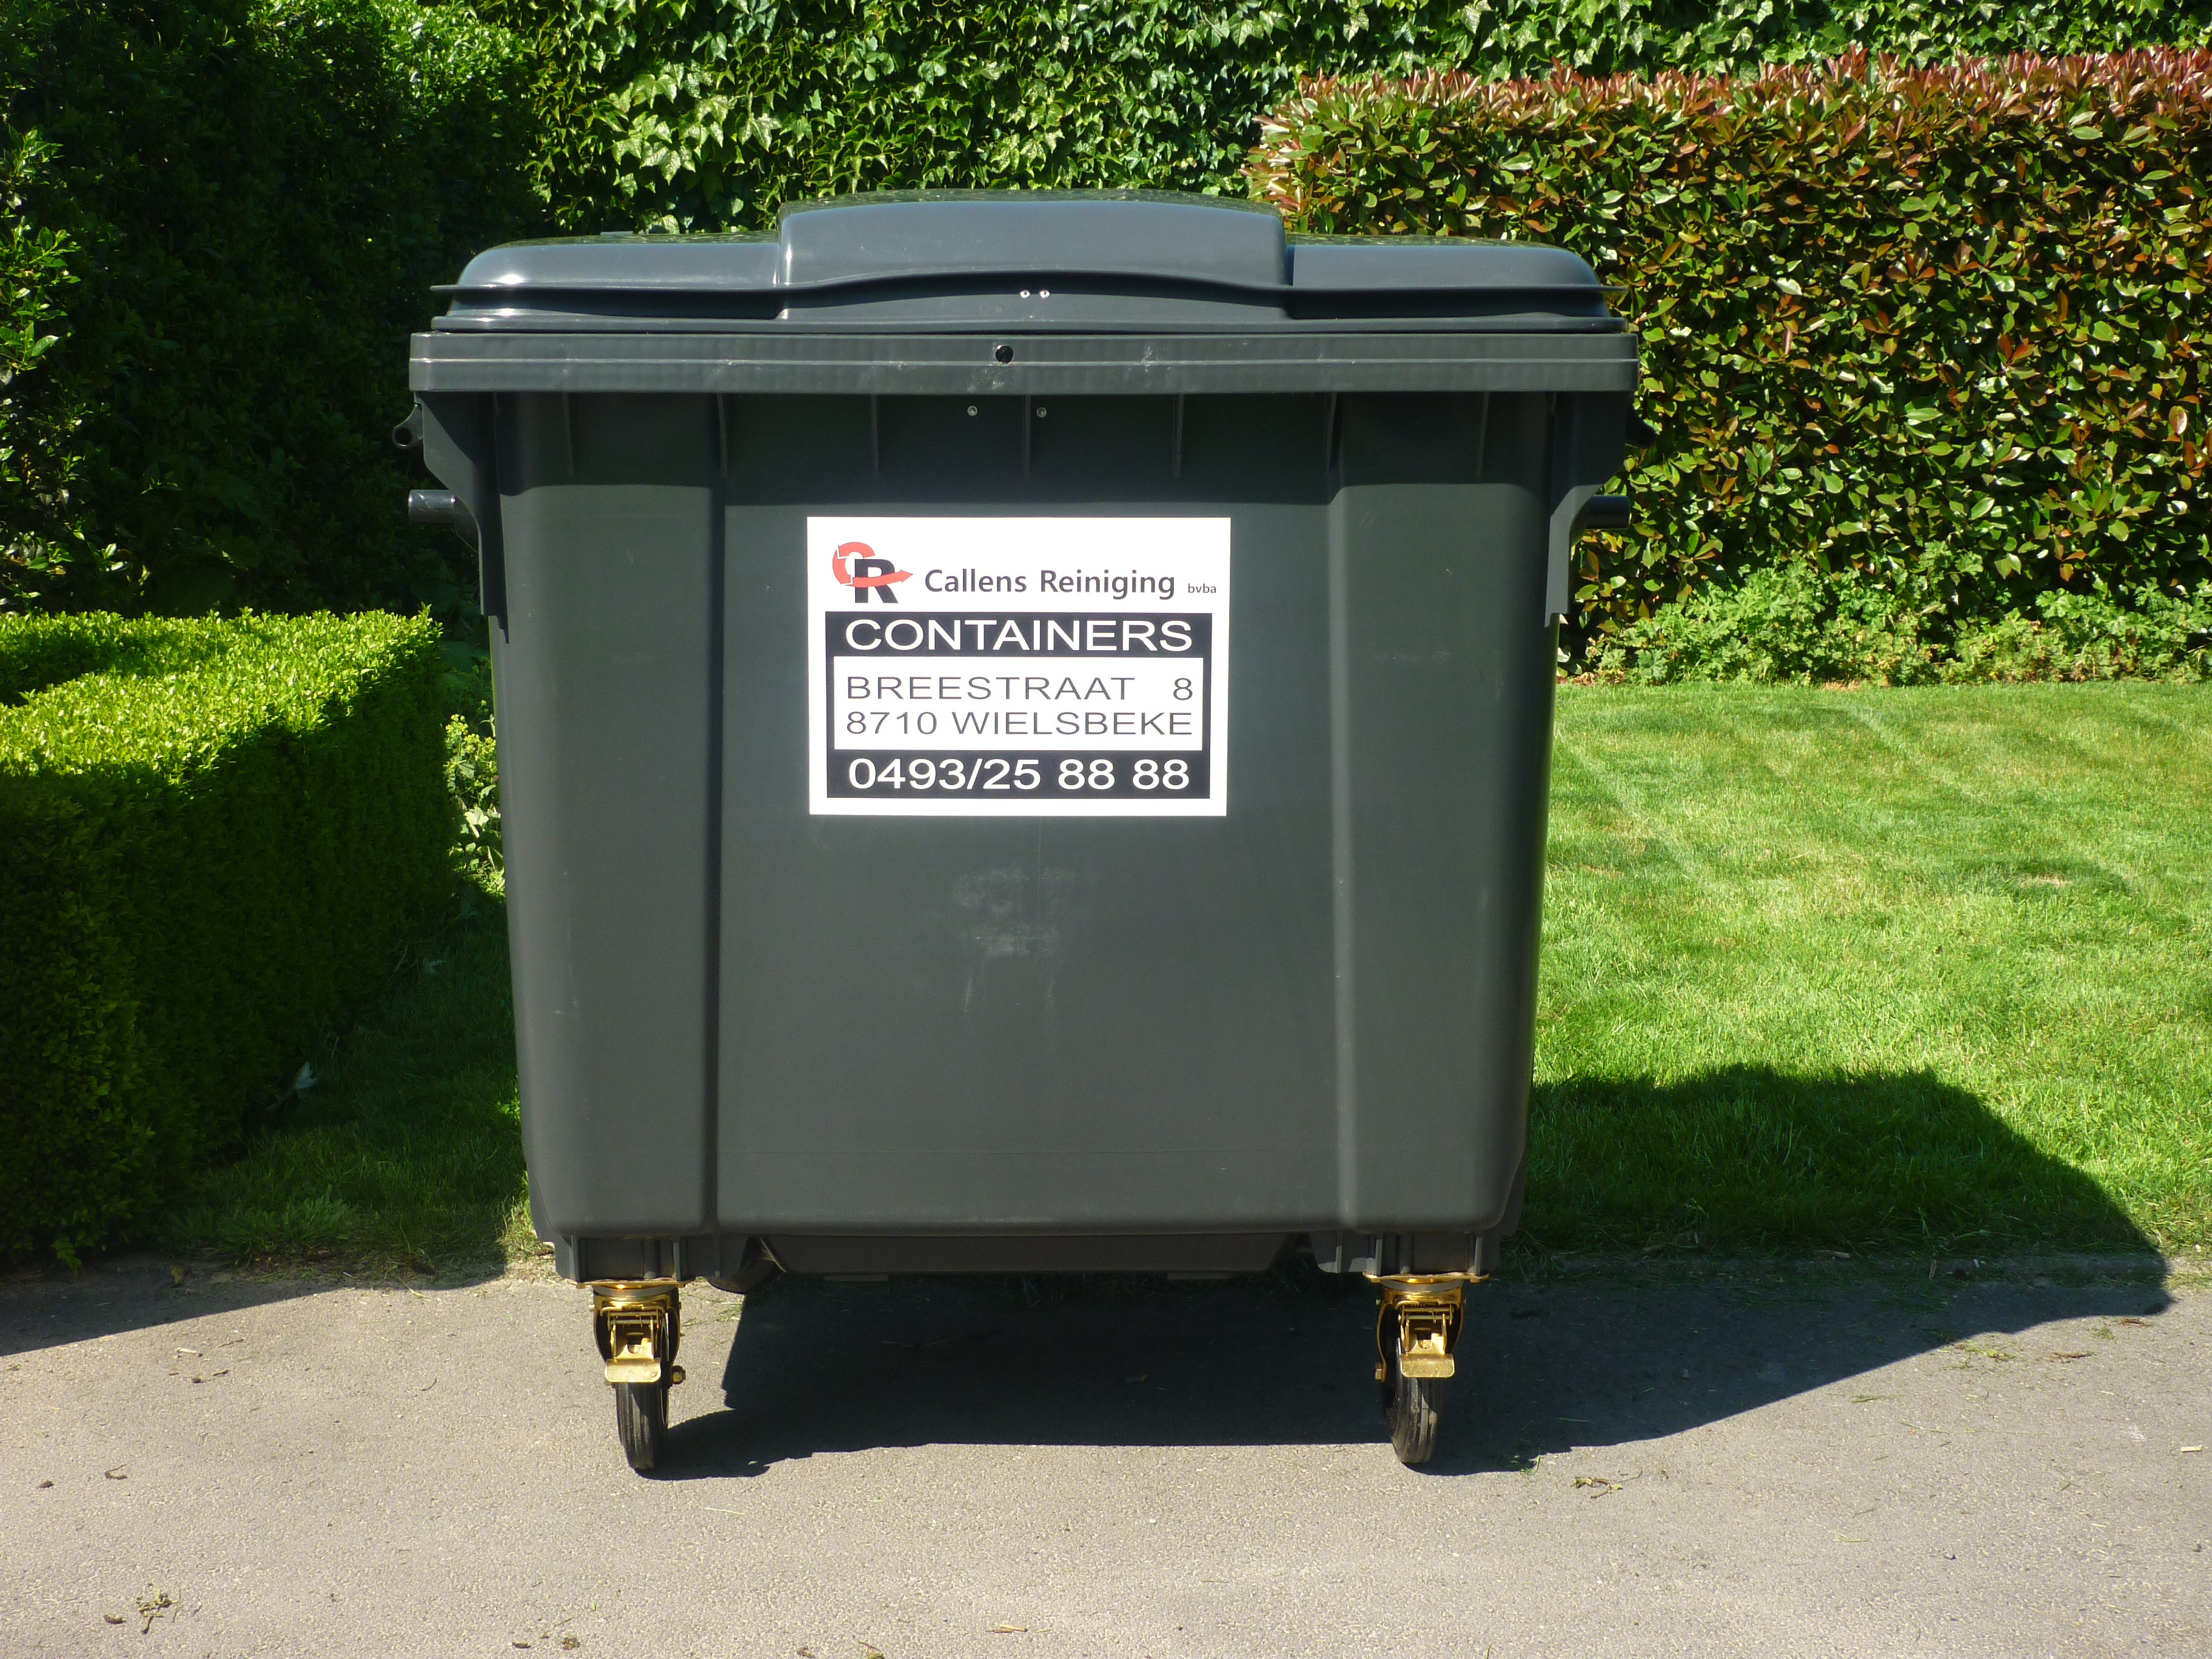 Rolcontainer 1100L voorkant.jpg